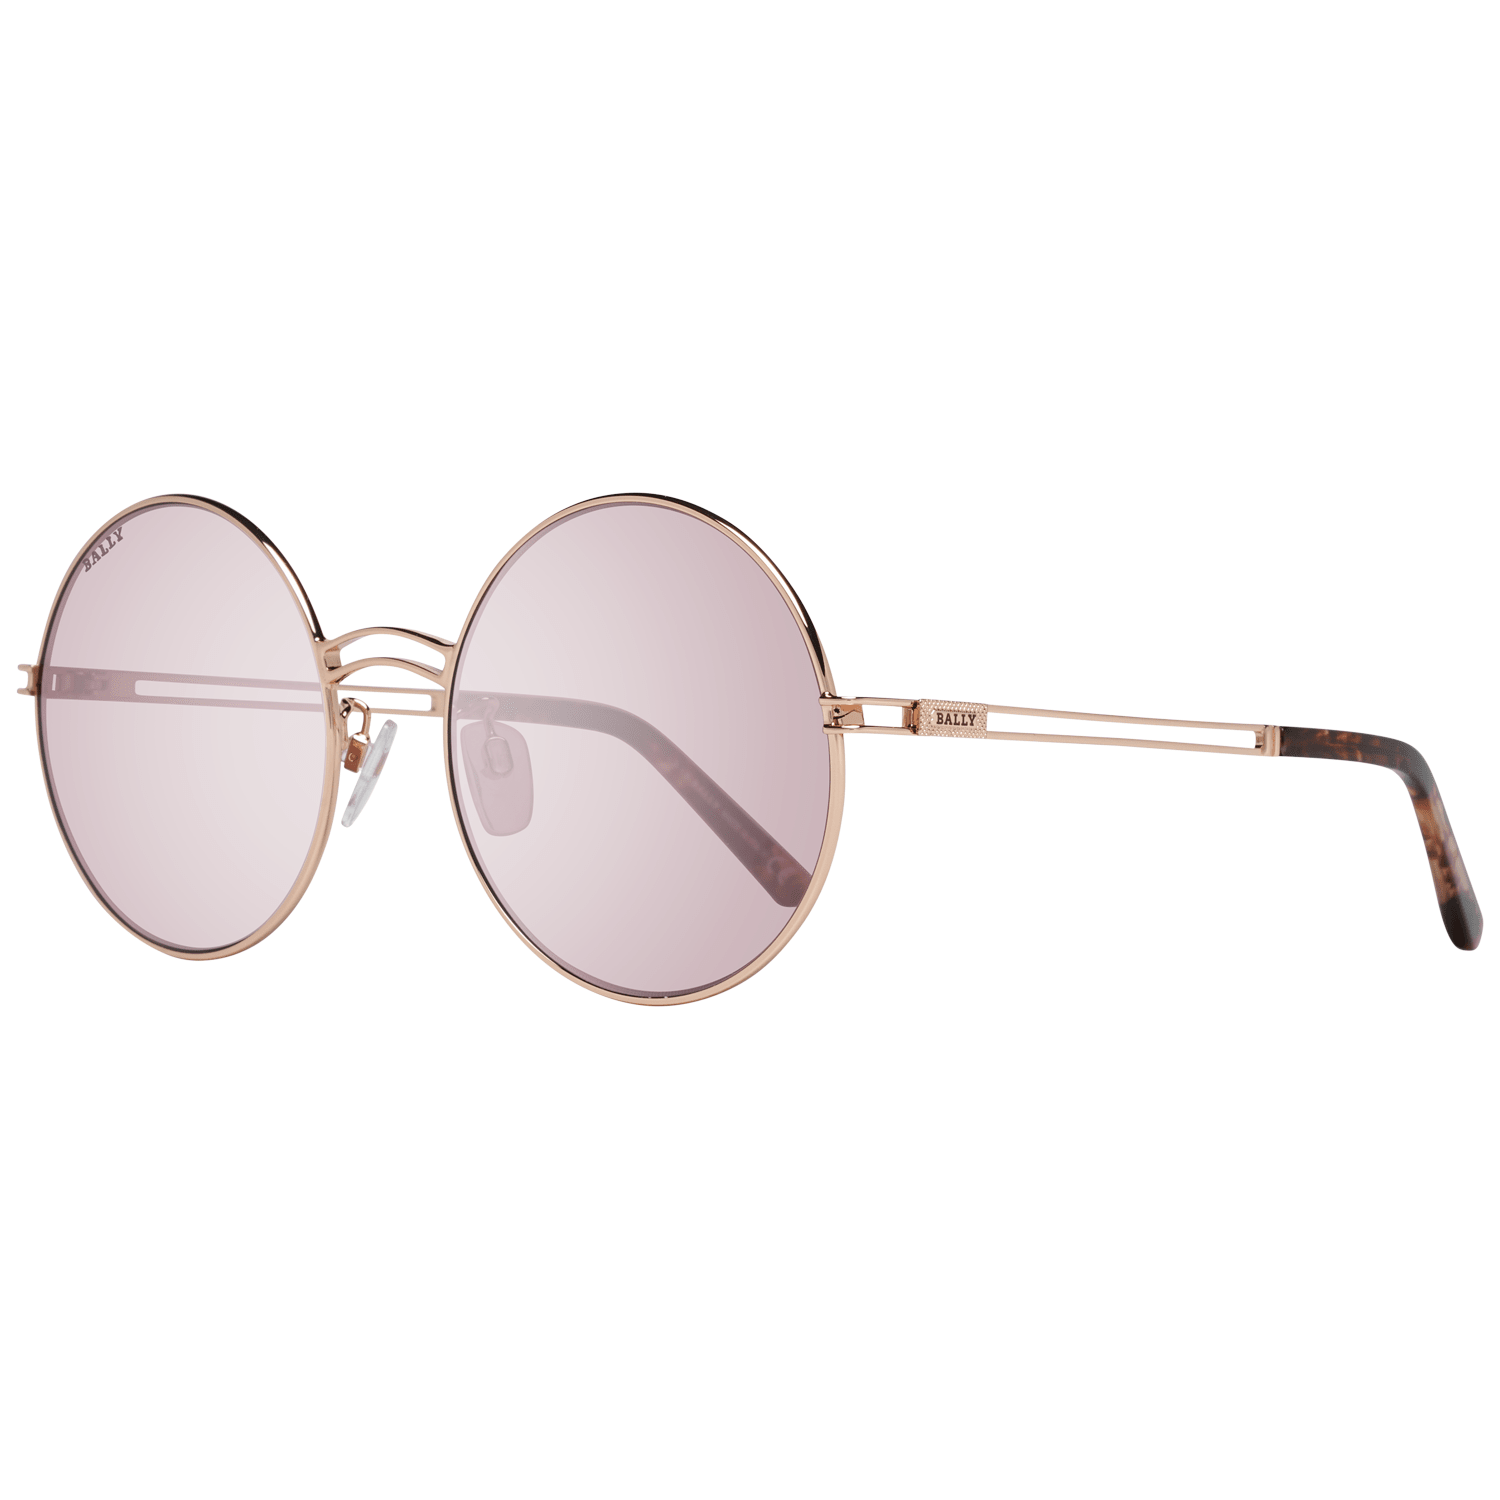 Bally Women's Sunglasses Rose Gold BY0001-D 5628S